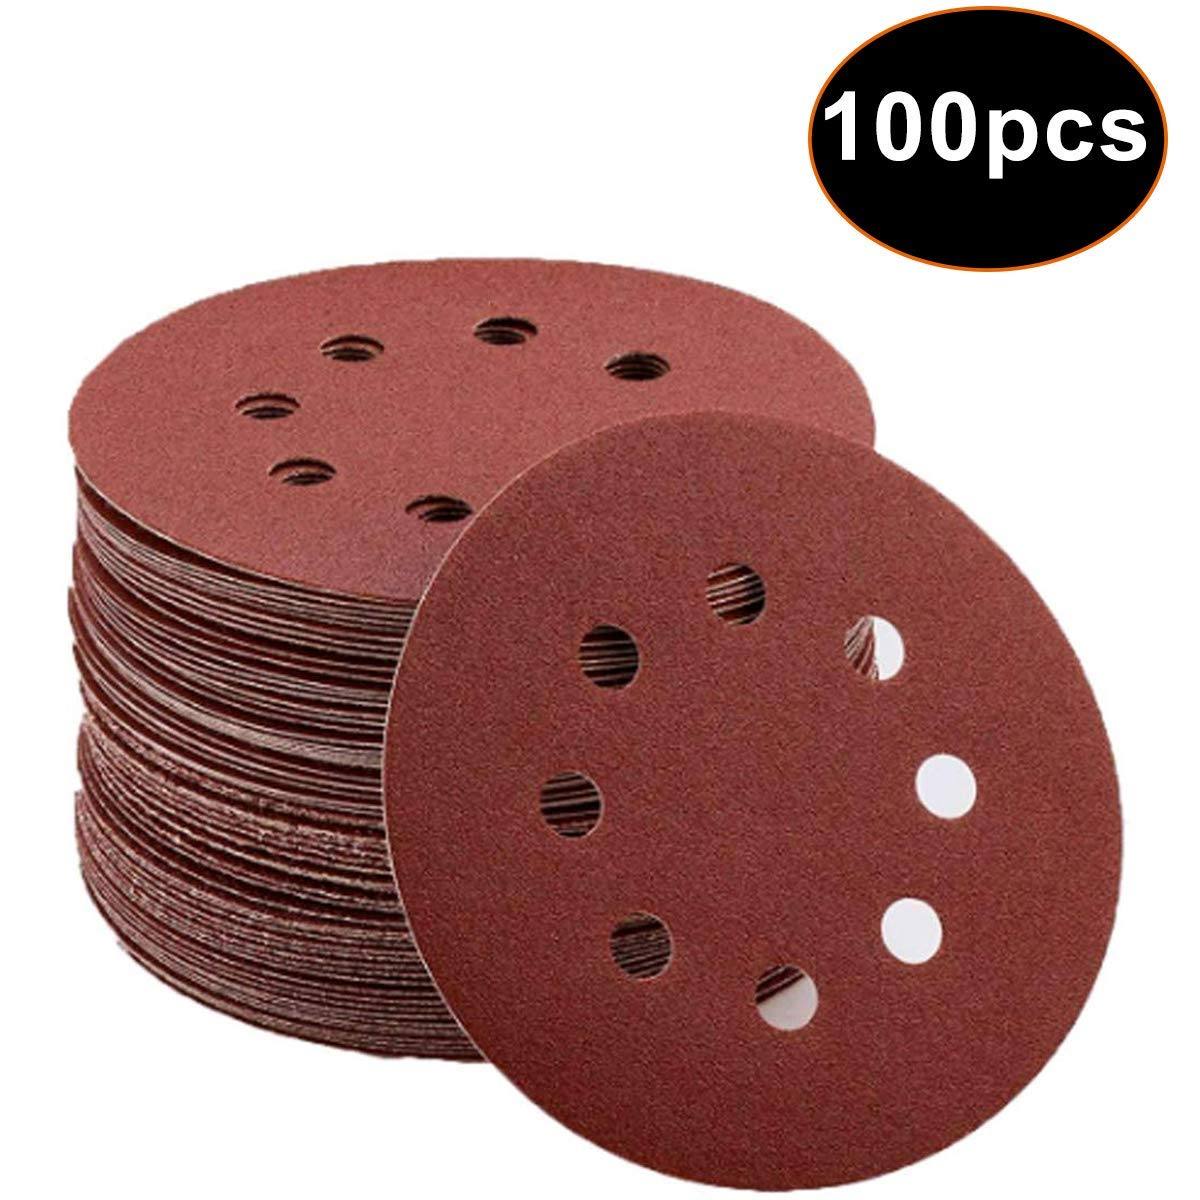 100 pcs Sandpaper Sanding Discs Pads 40 60 80 100 120 180 240 320 400 800 Assorted Grits 5 inch 8 Hole and Loopby for Random Orbital Sander